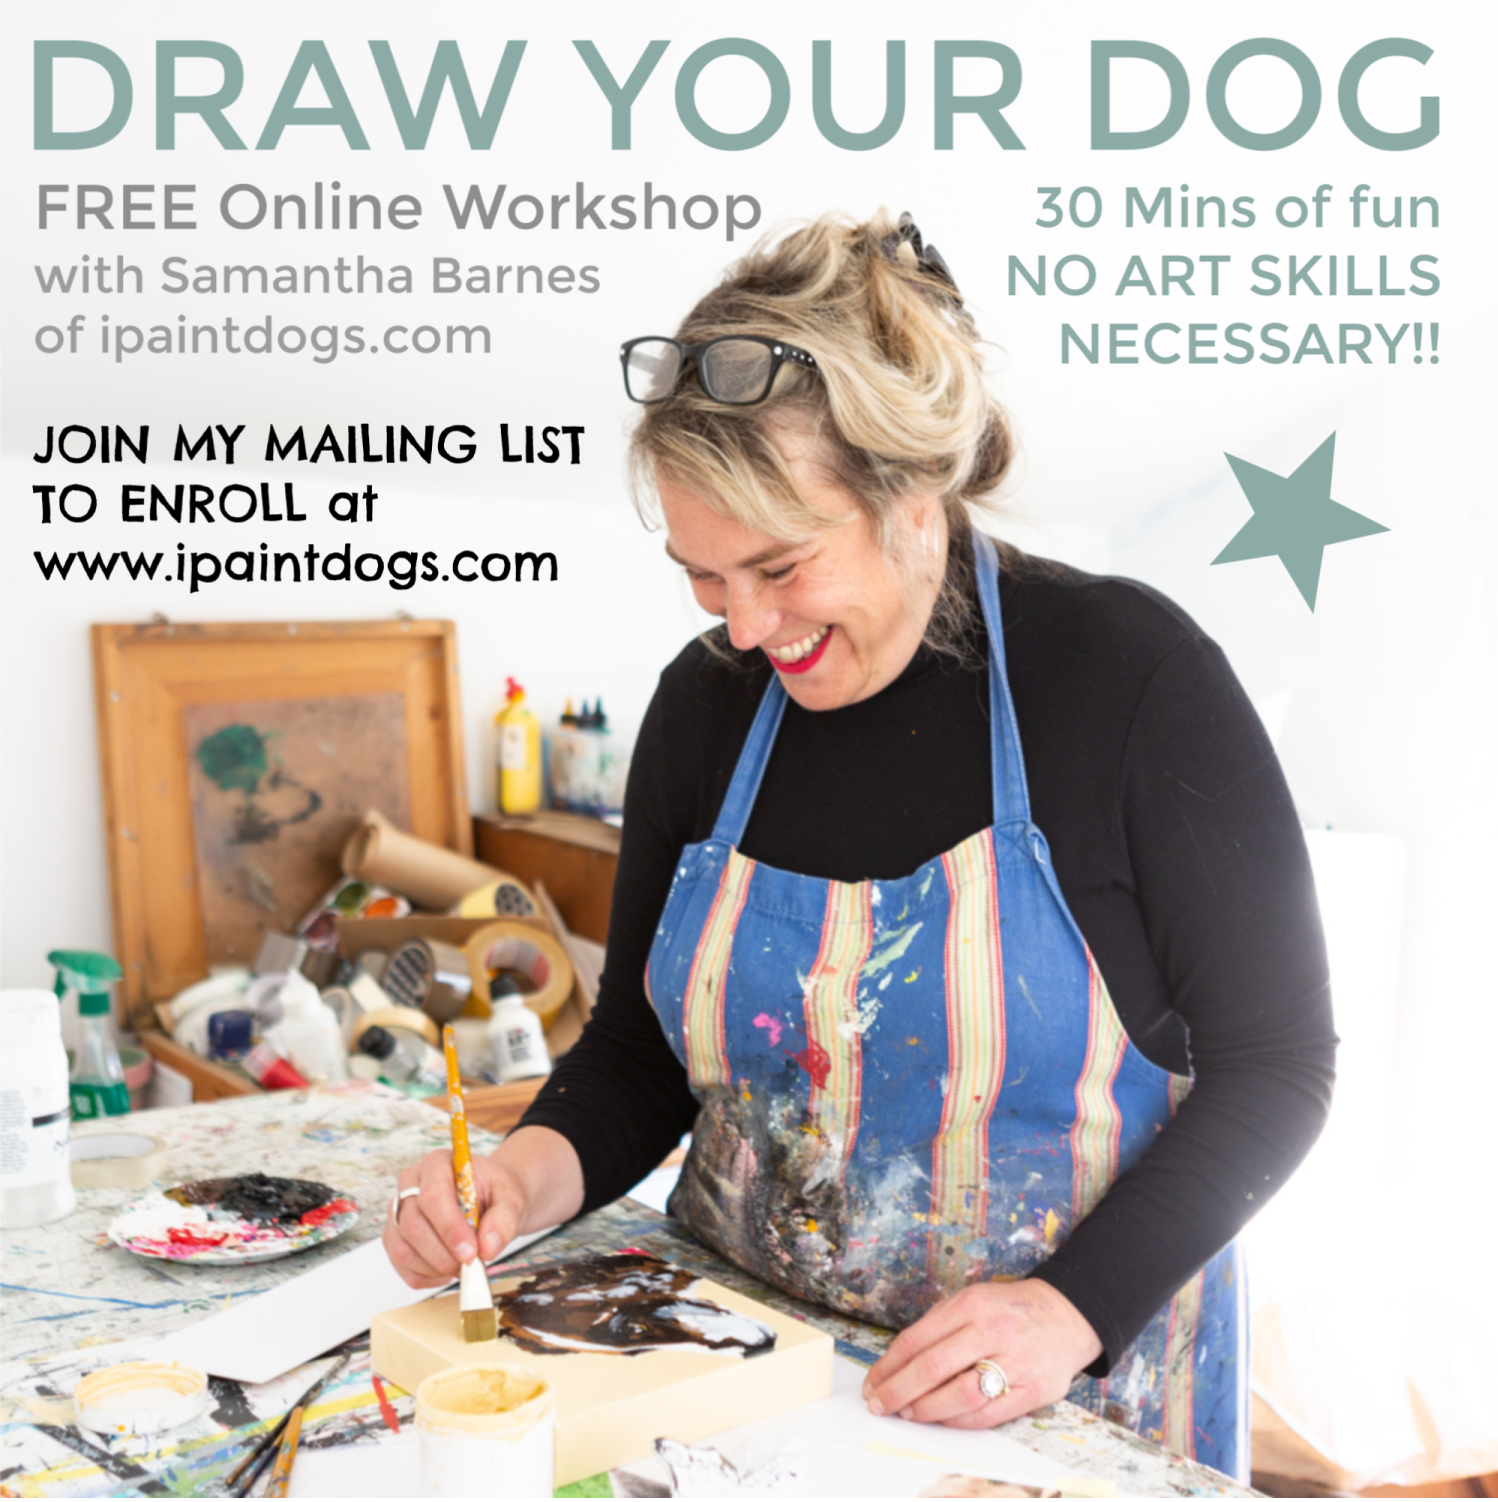 Draw your dog workshop with Samantha Barnes, ipaintdogs.com